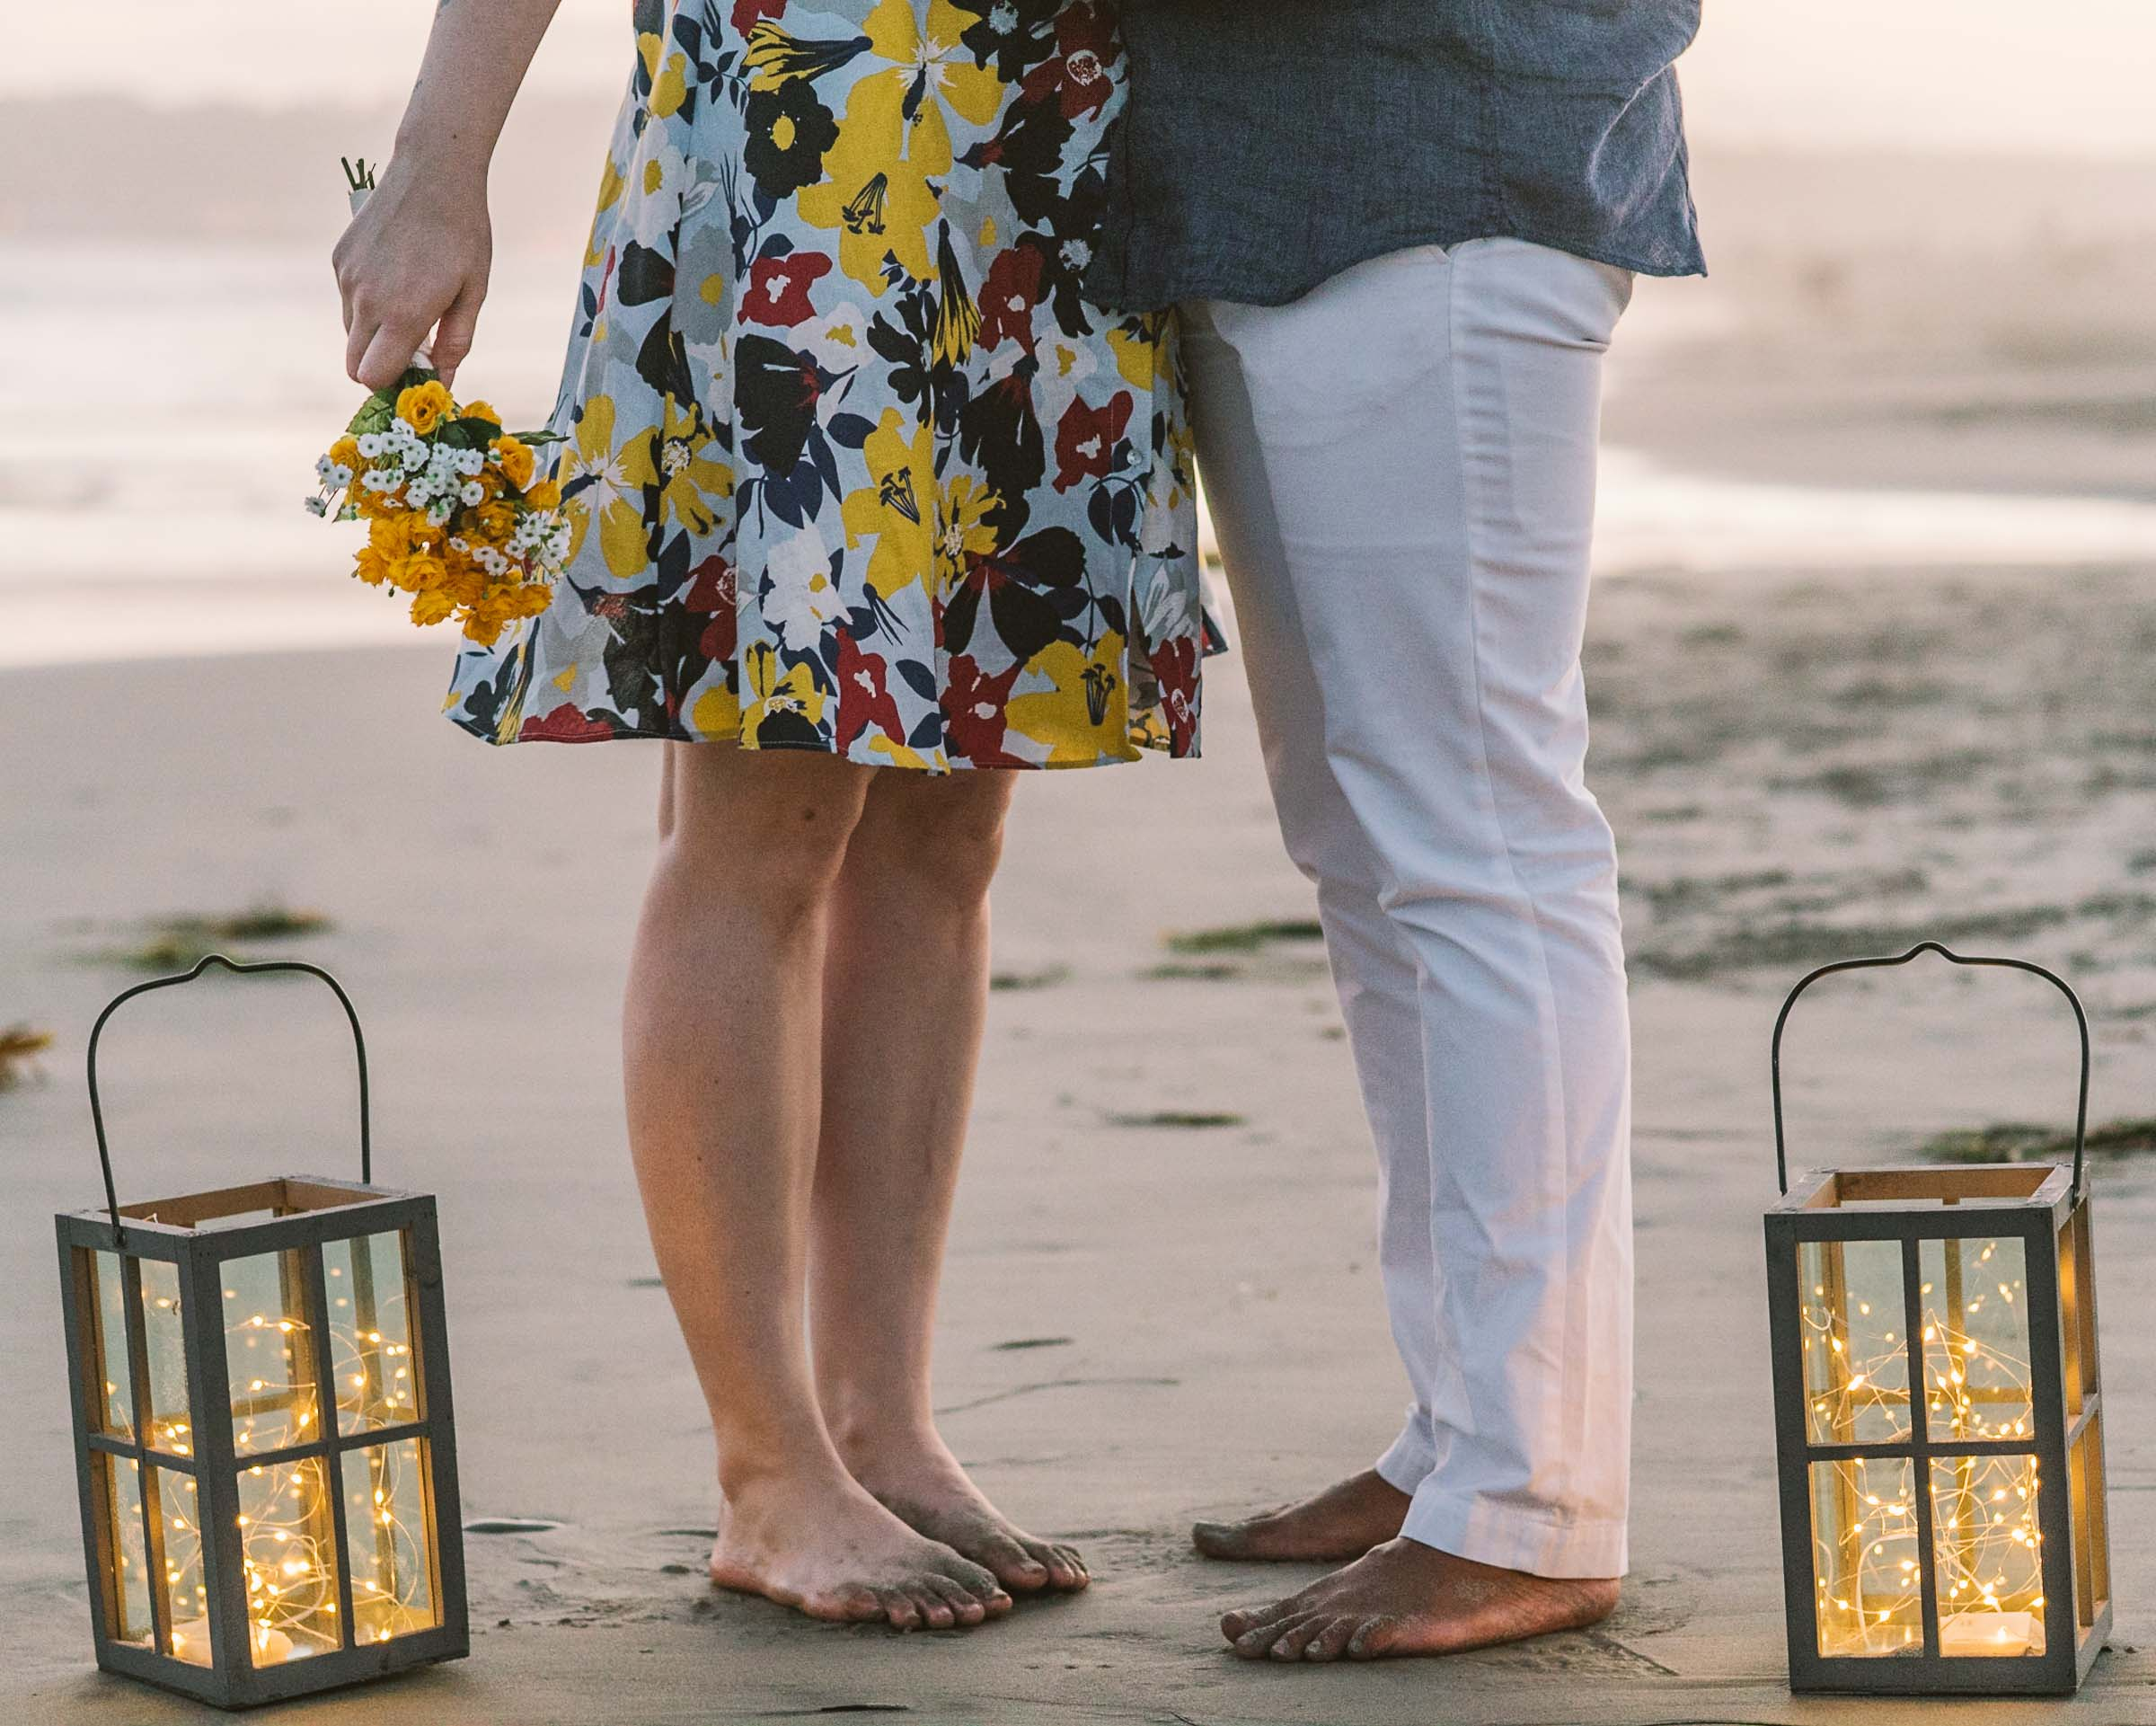 engagement session coronado island sunset san diego california white girl yellow flowers blue red dress african american interracial couple dusk feet lanterns pixie lights